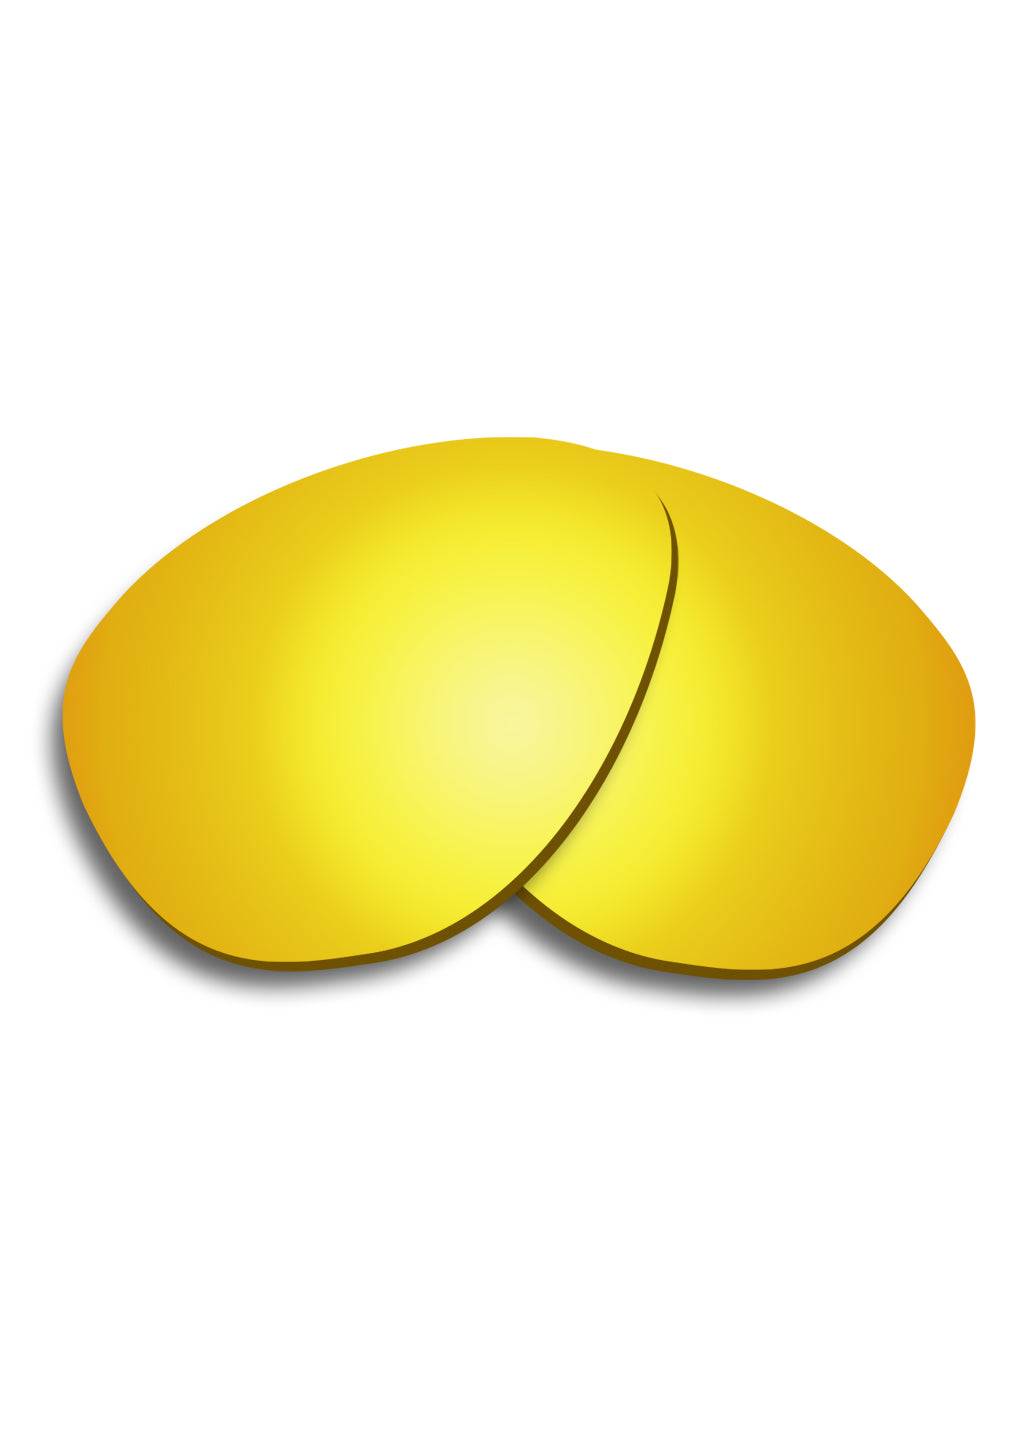 Yellow replacement lenses for our folding aviator sunglasses